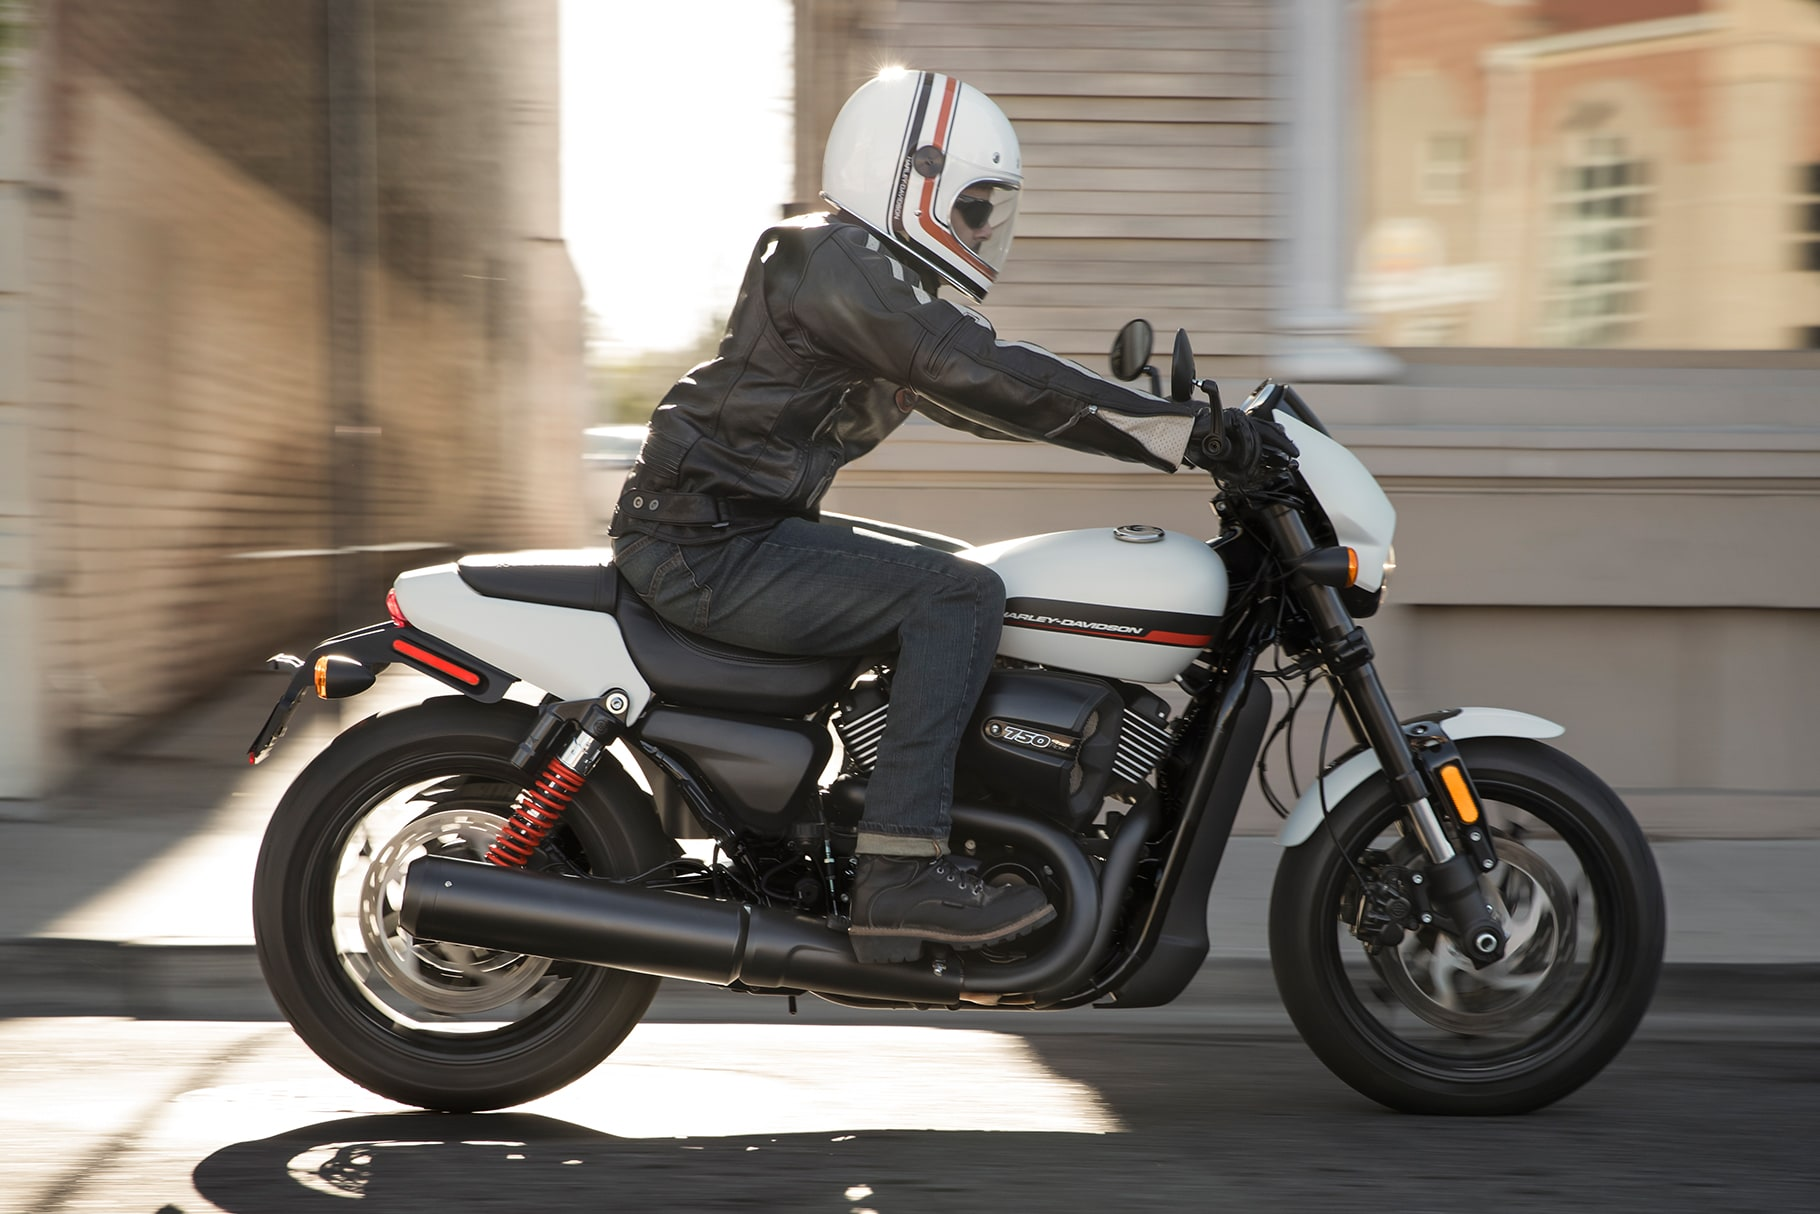 Man riding a 2019 Street H-D motorcycle